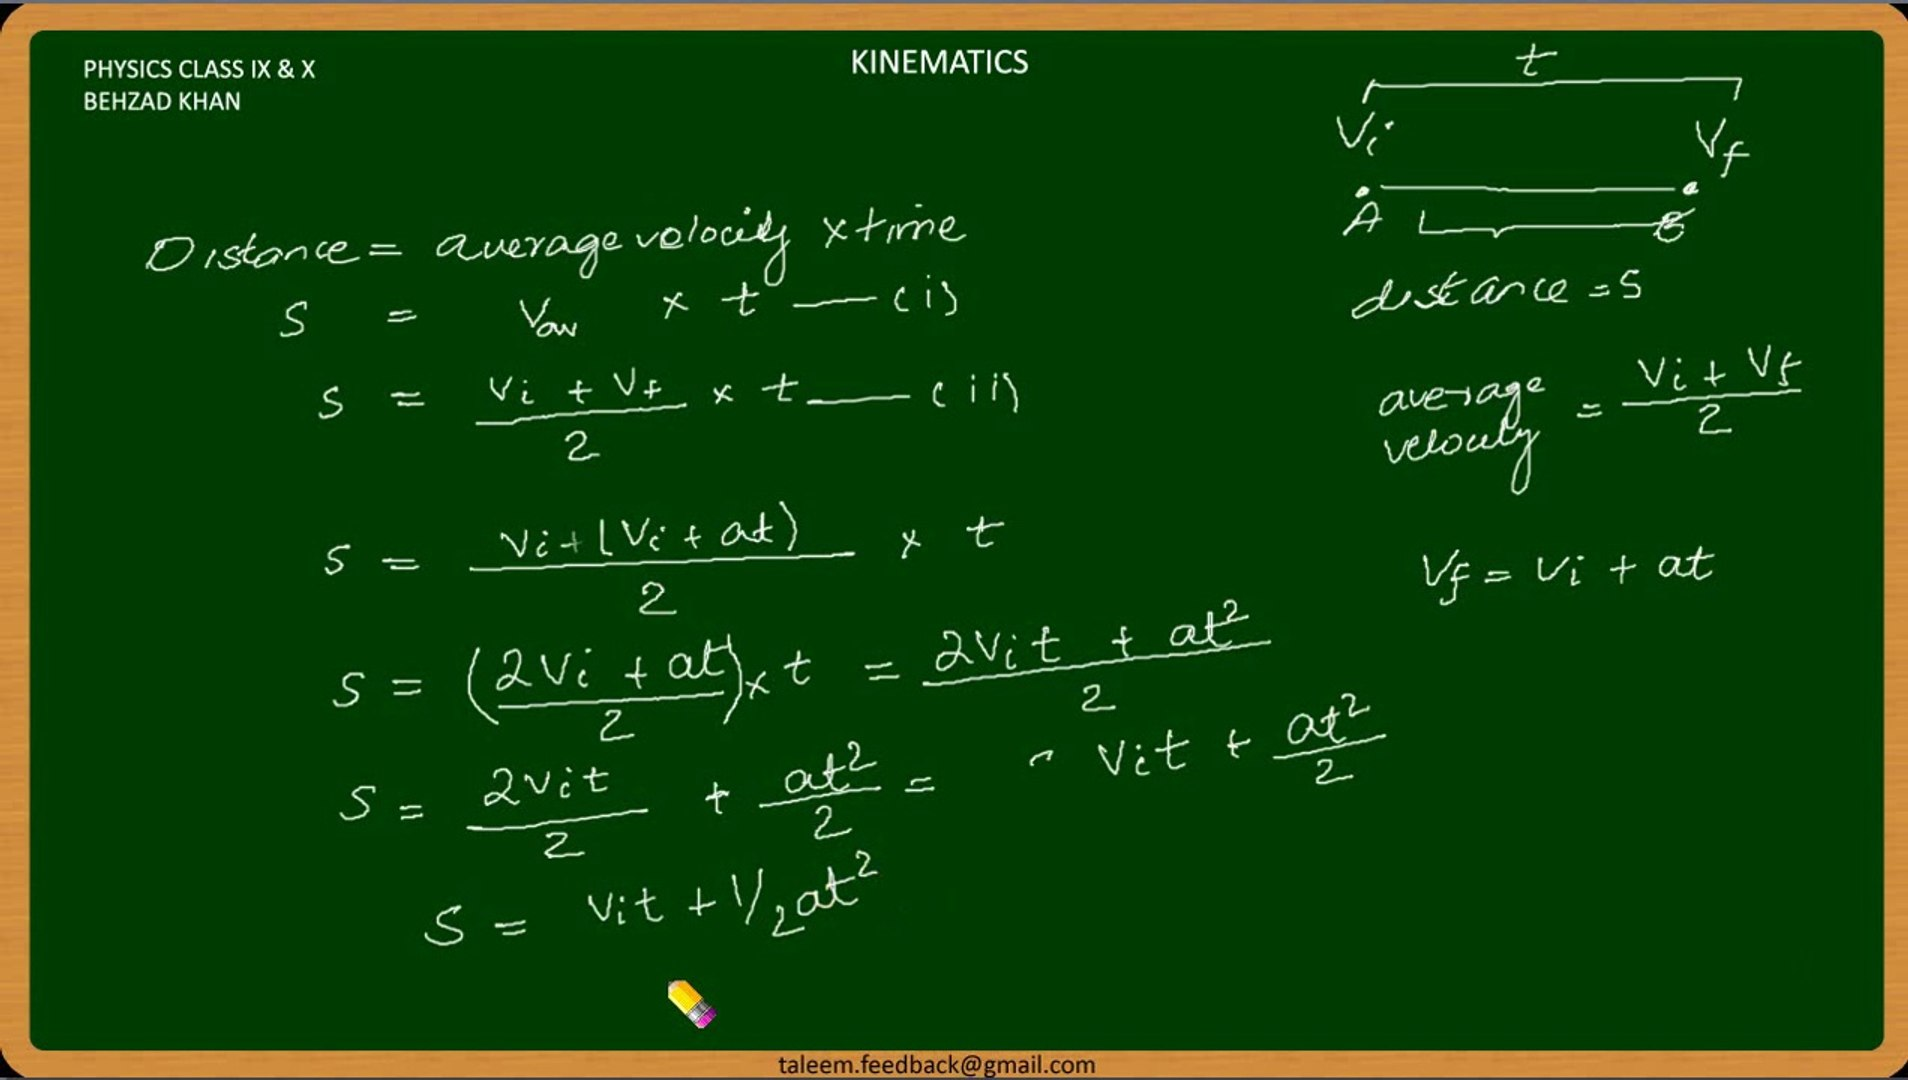 Lecture 017 Kinematics Part 4 Equations of Motion Physics in urdu free  Tutorial Class IX